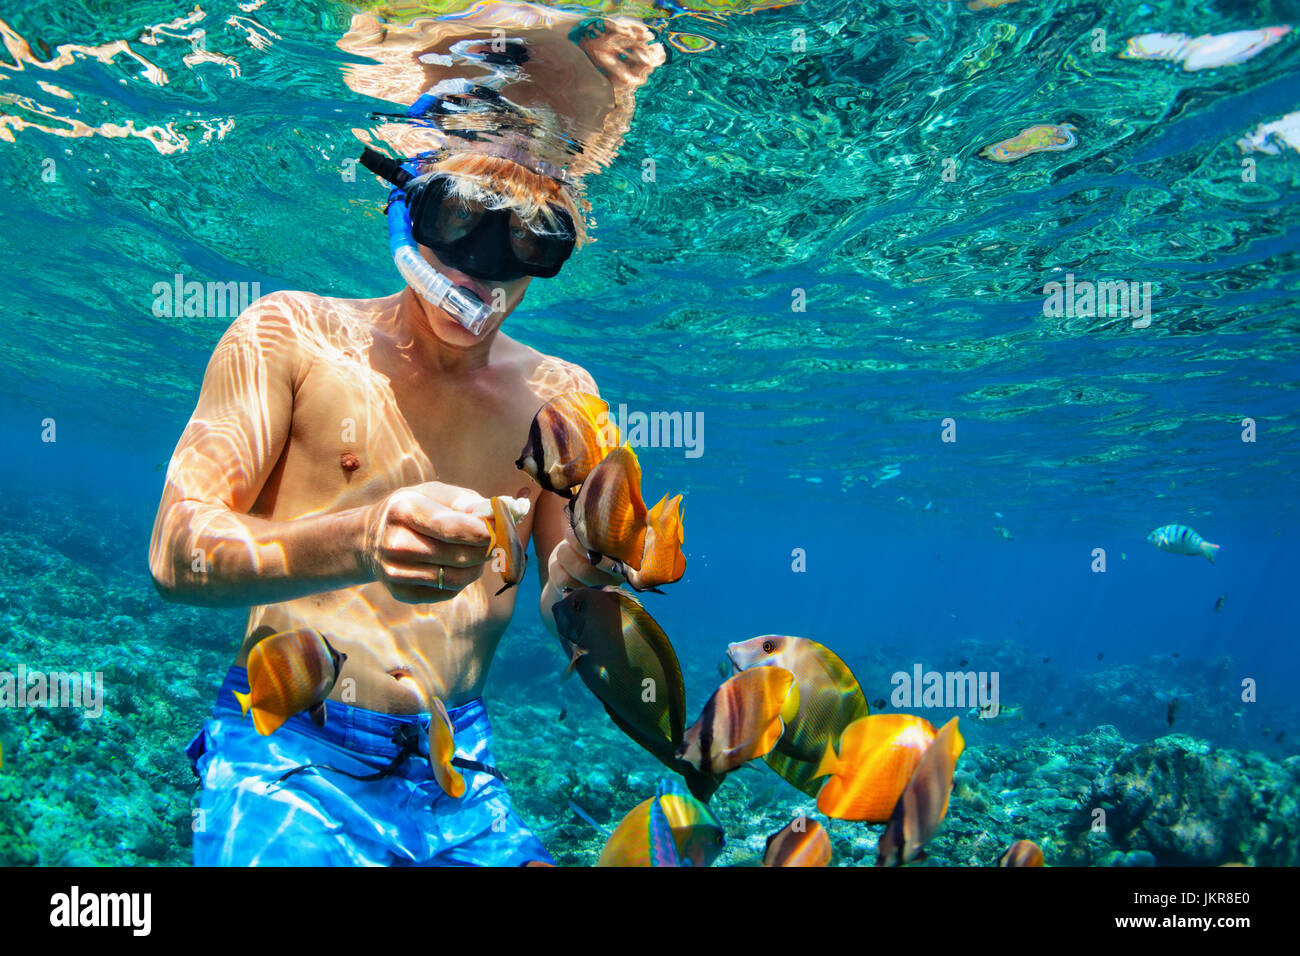 Happy family vacation - man in snorkeling mask dive underwater with tropical fishes in coral reef sea pool. Travel - Stock Image